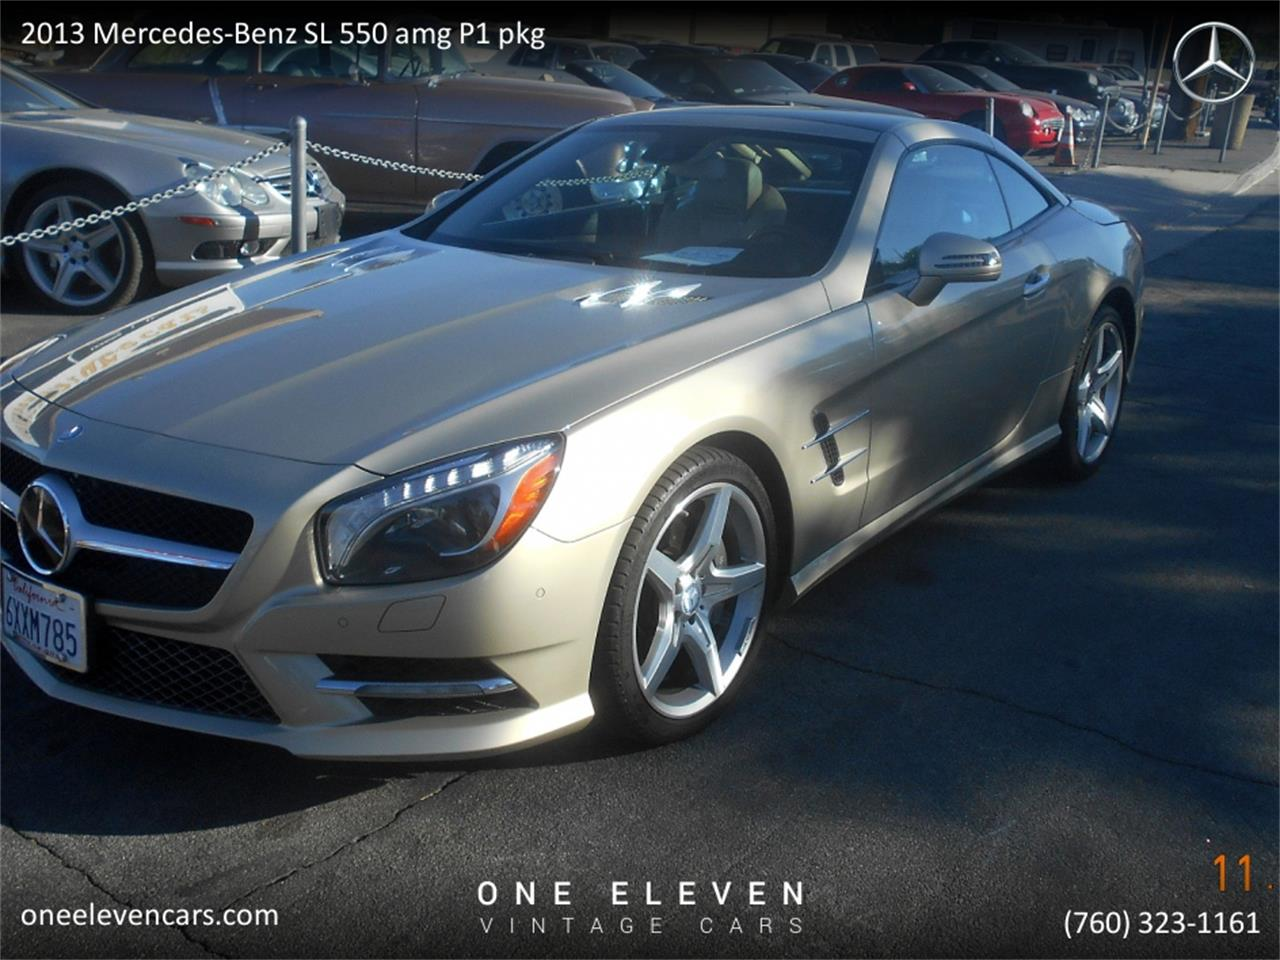 for sale 2013 mercedes-benz sl-class in palm springs, california cars - palm springs, ca at geebo